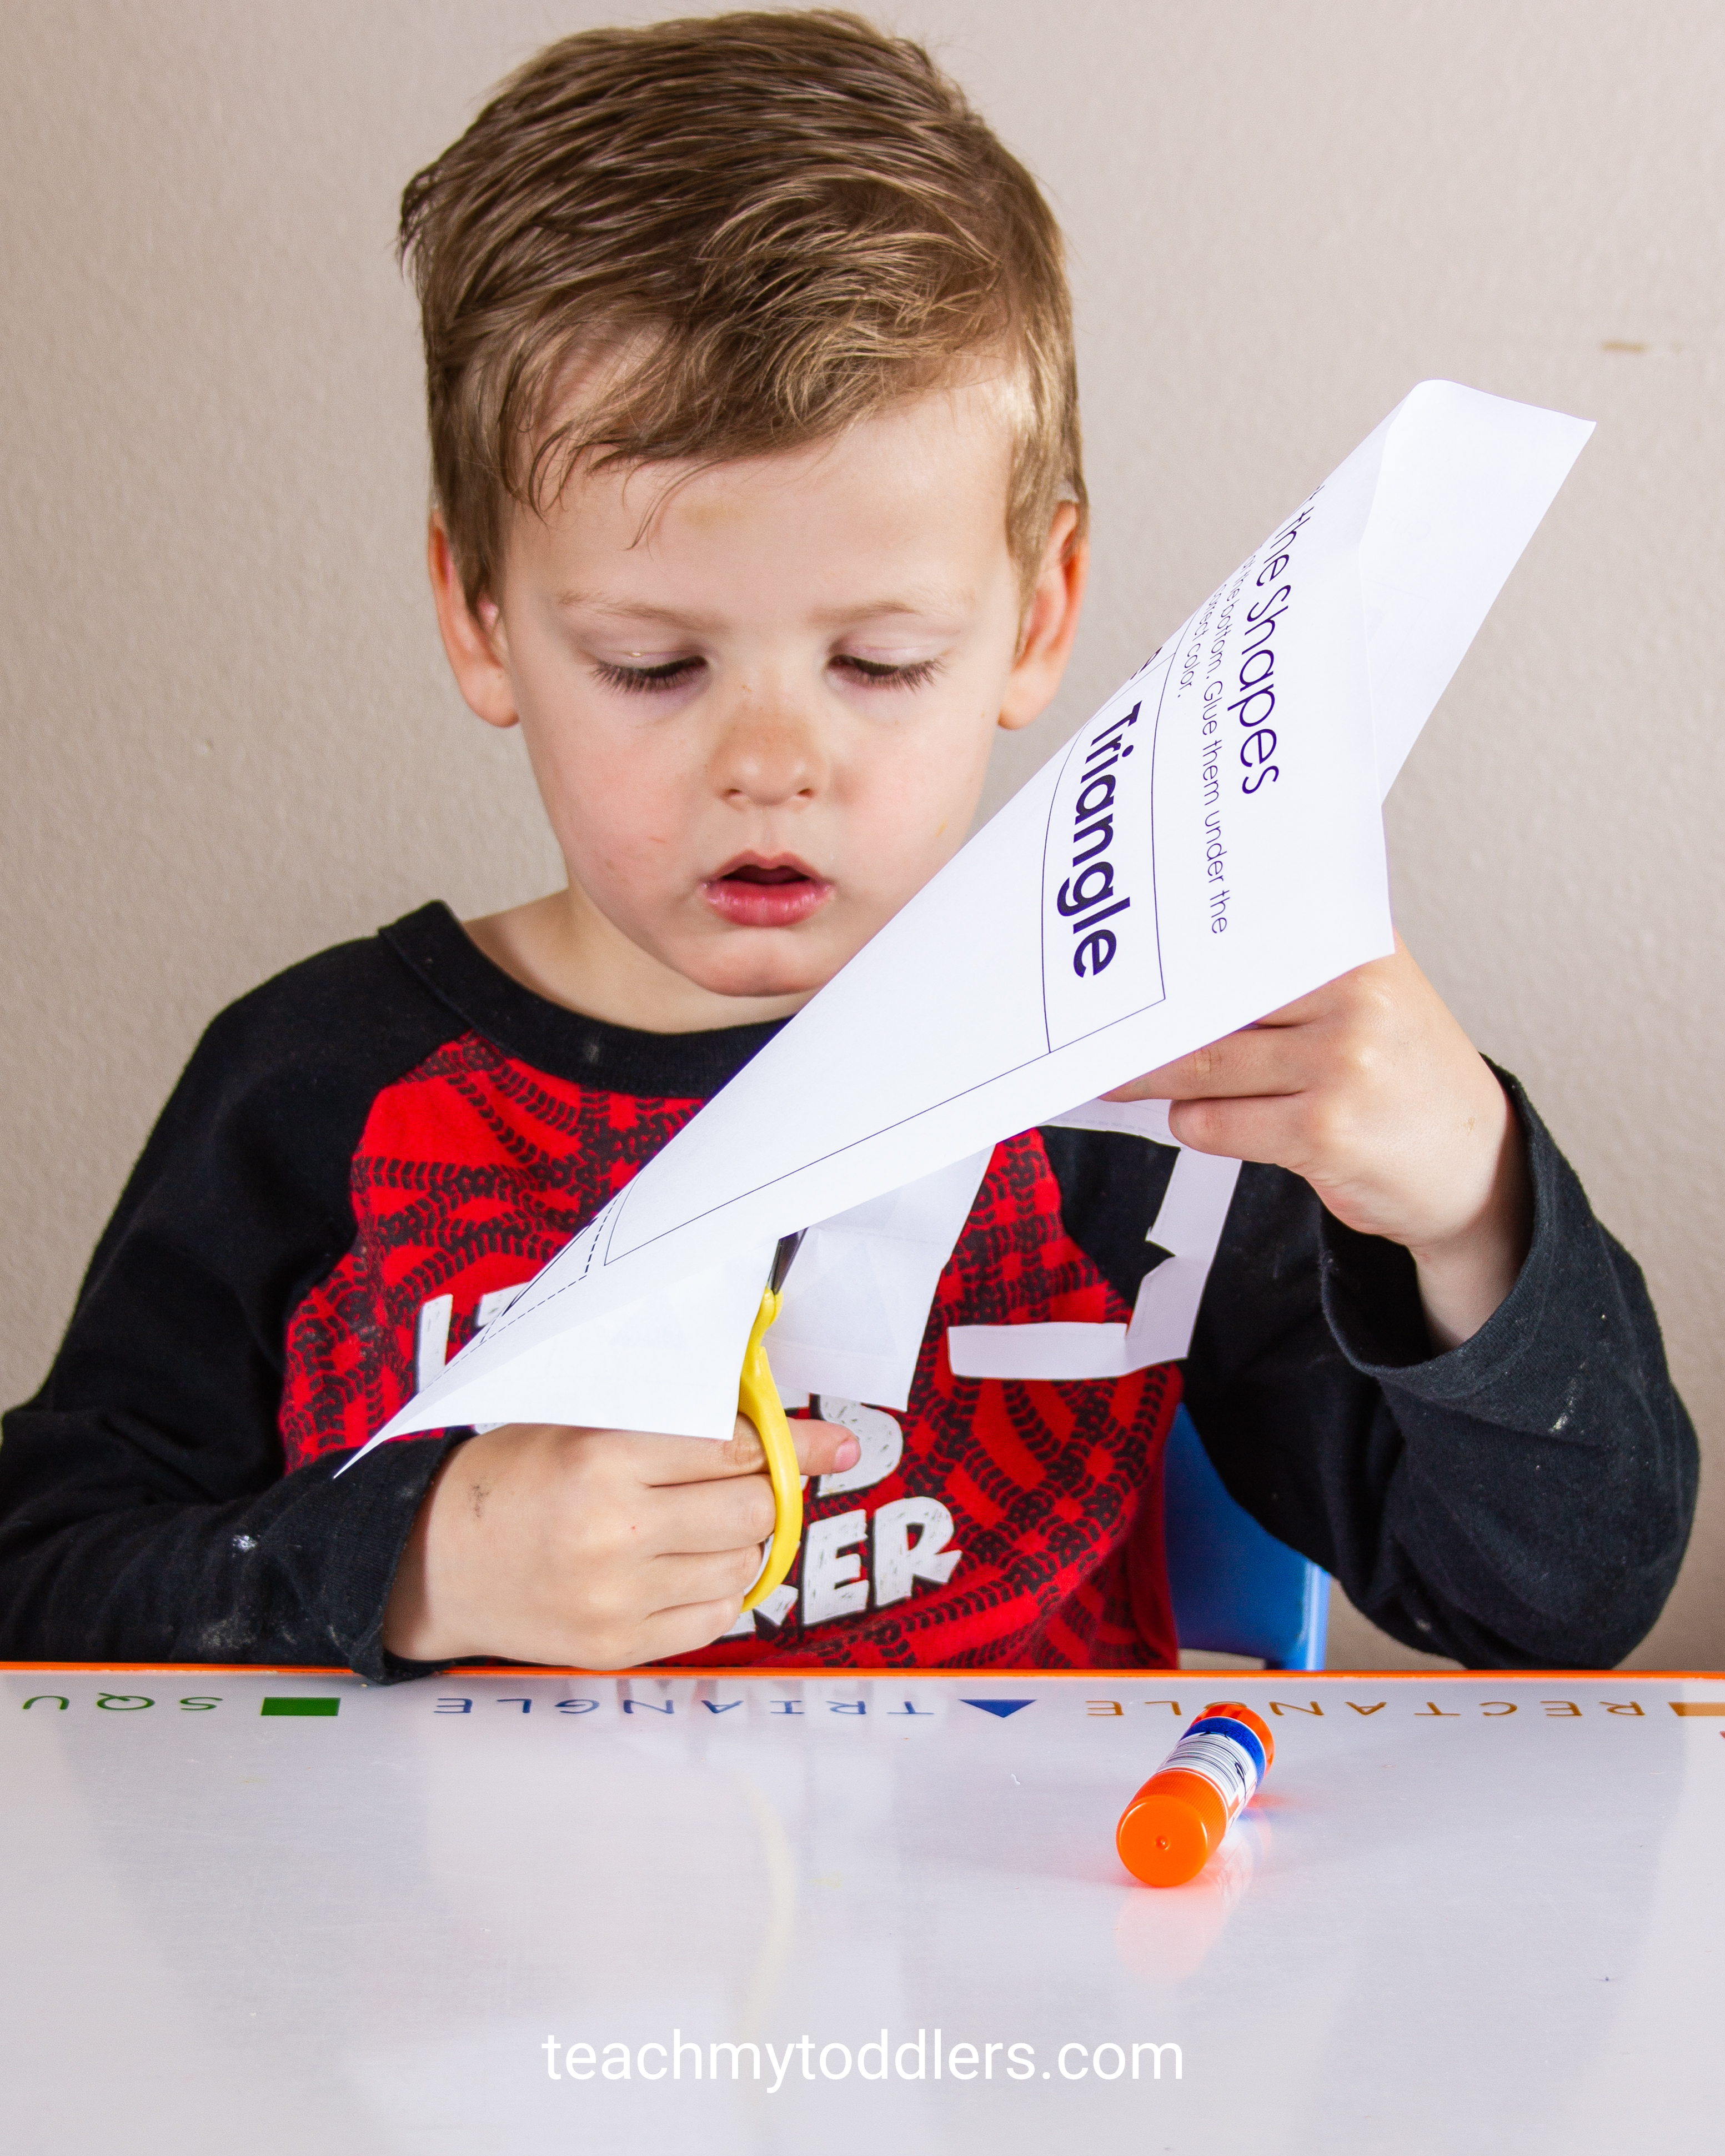 Discover how to use this shape sorting cut and paste activity to teach preschoolers shapes